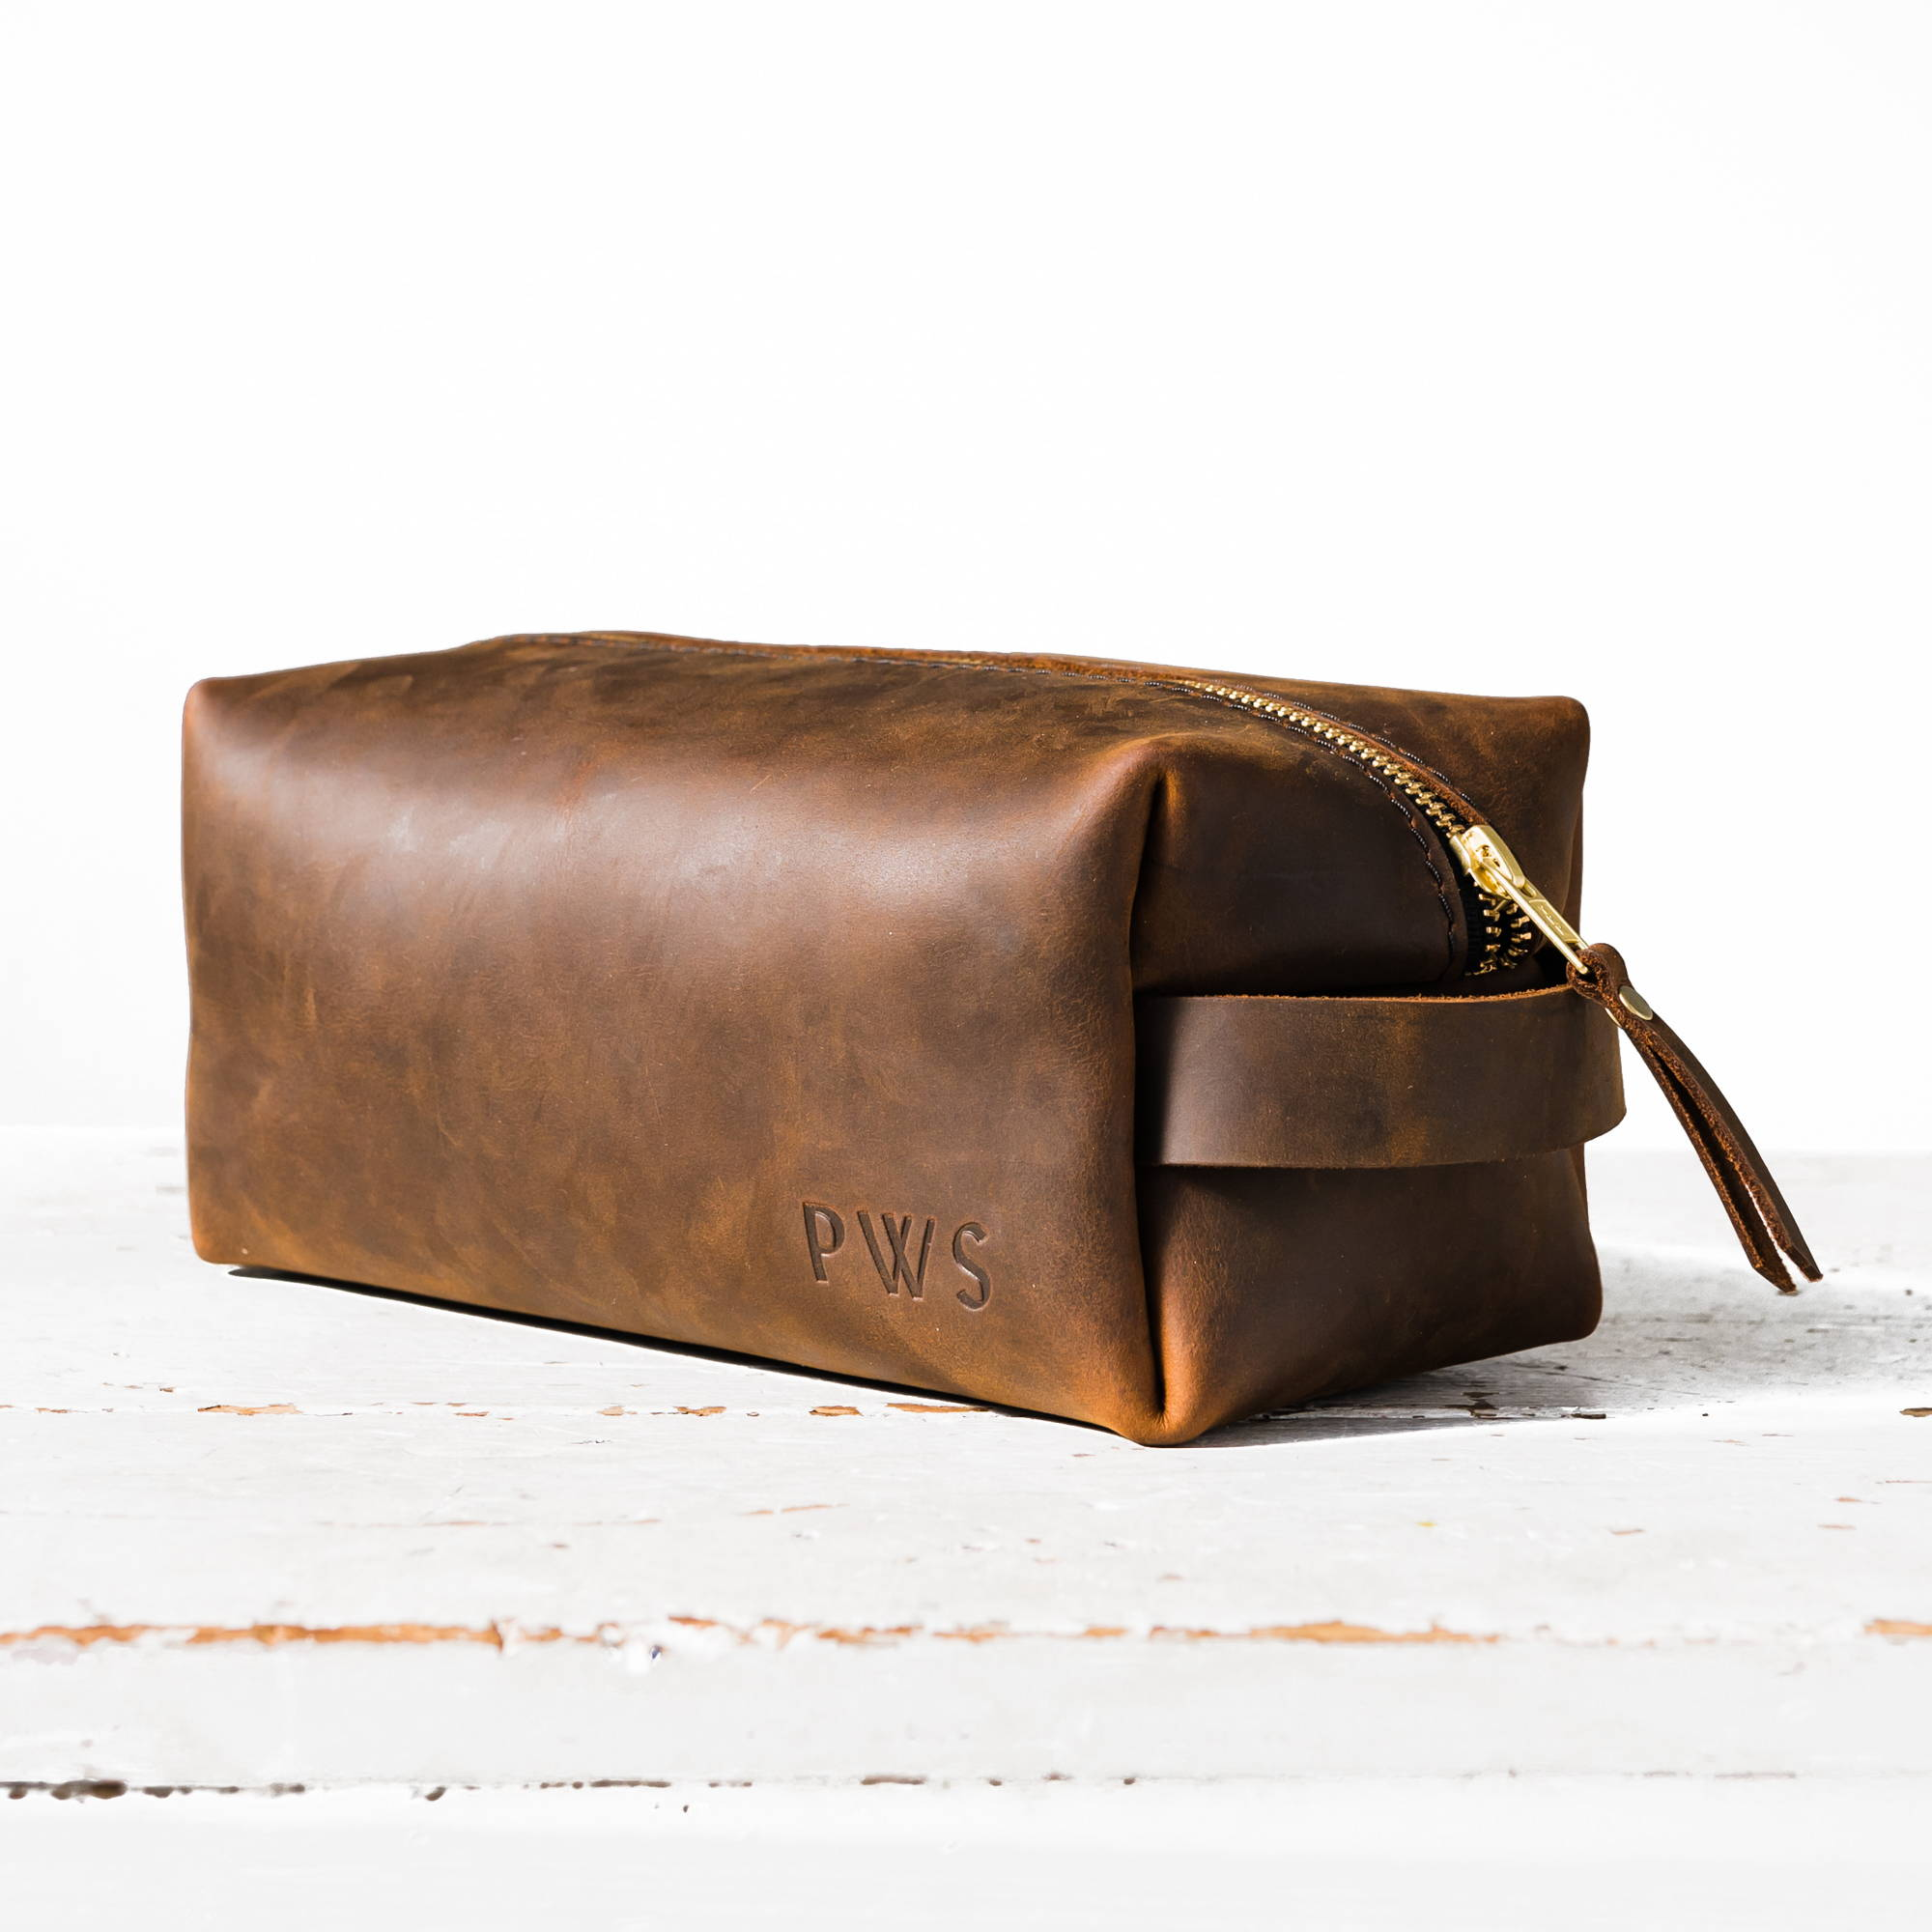 canyon handmade leather dopp kit by portland leather goods